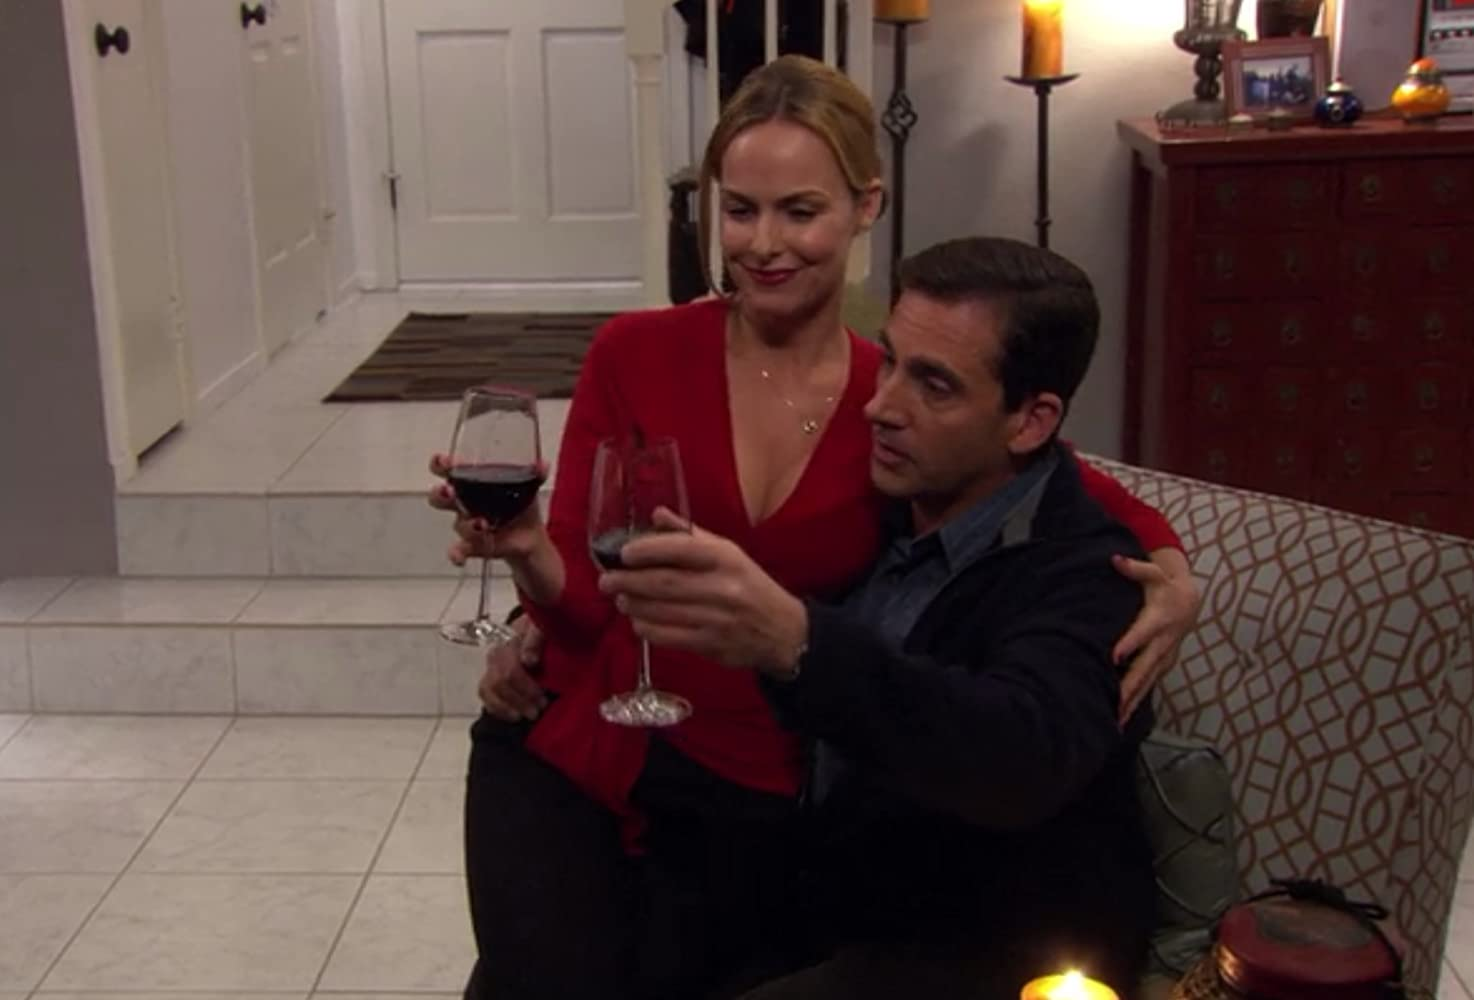 Melora Hardin and Steve Carell in The Office (2005)